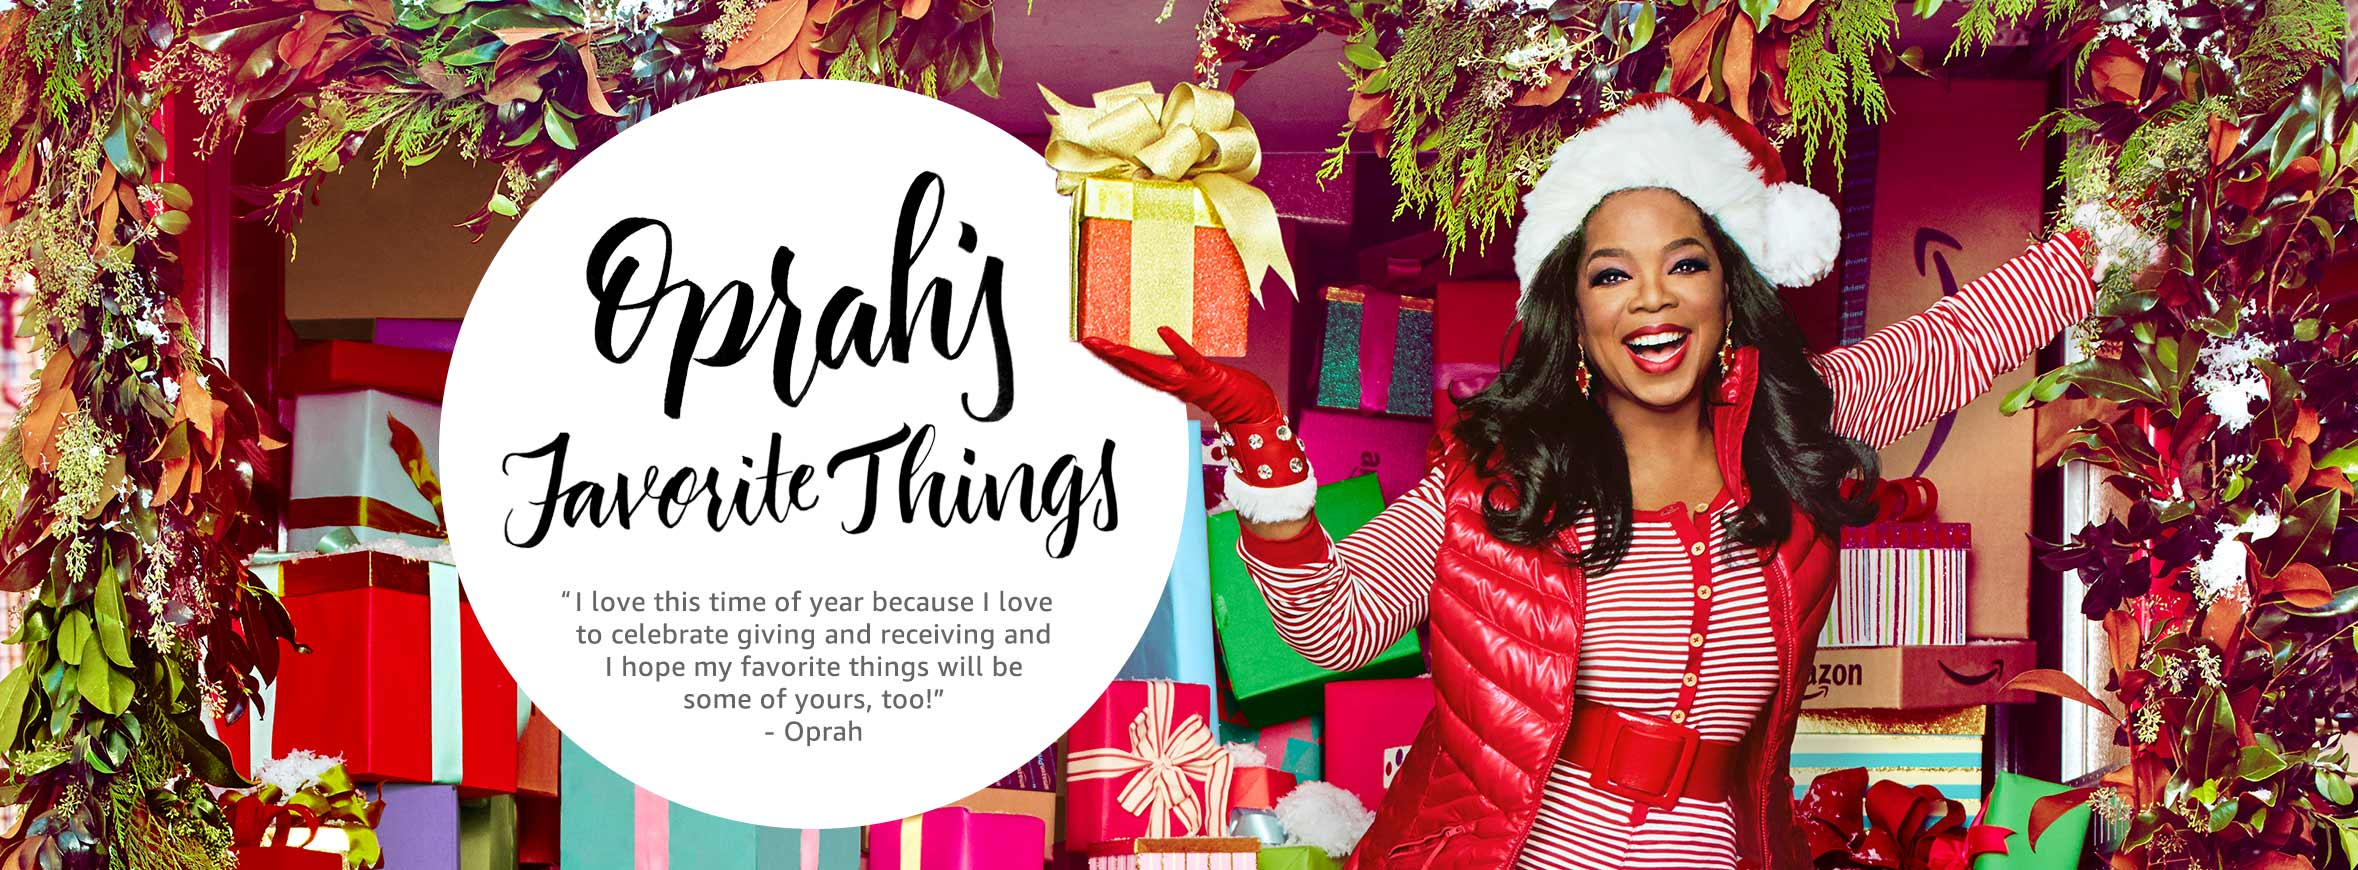 Oprah 12 Days Of Christmas.10 Must Have Items From Oprah S Favorite Things 2016